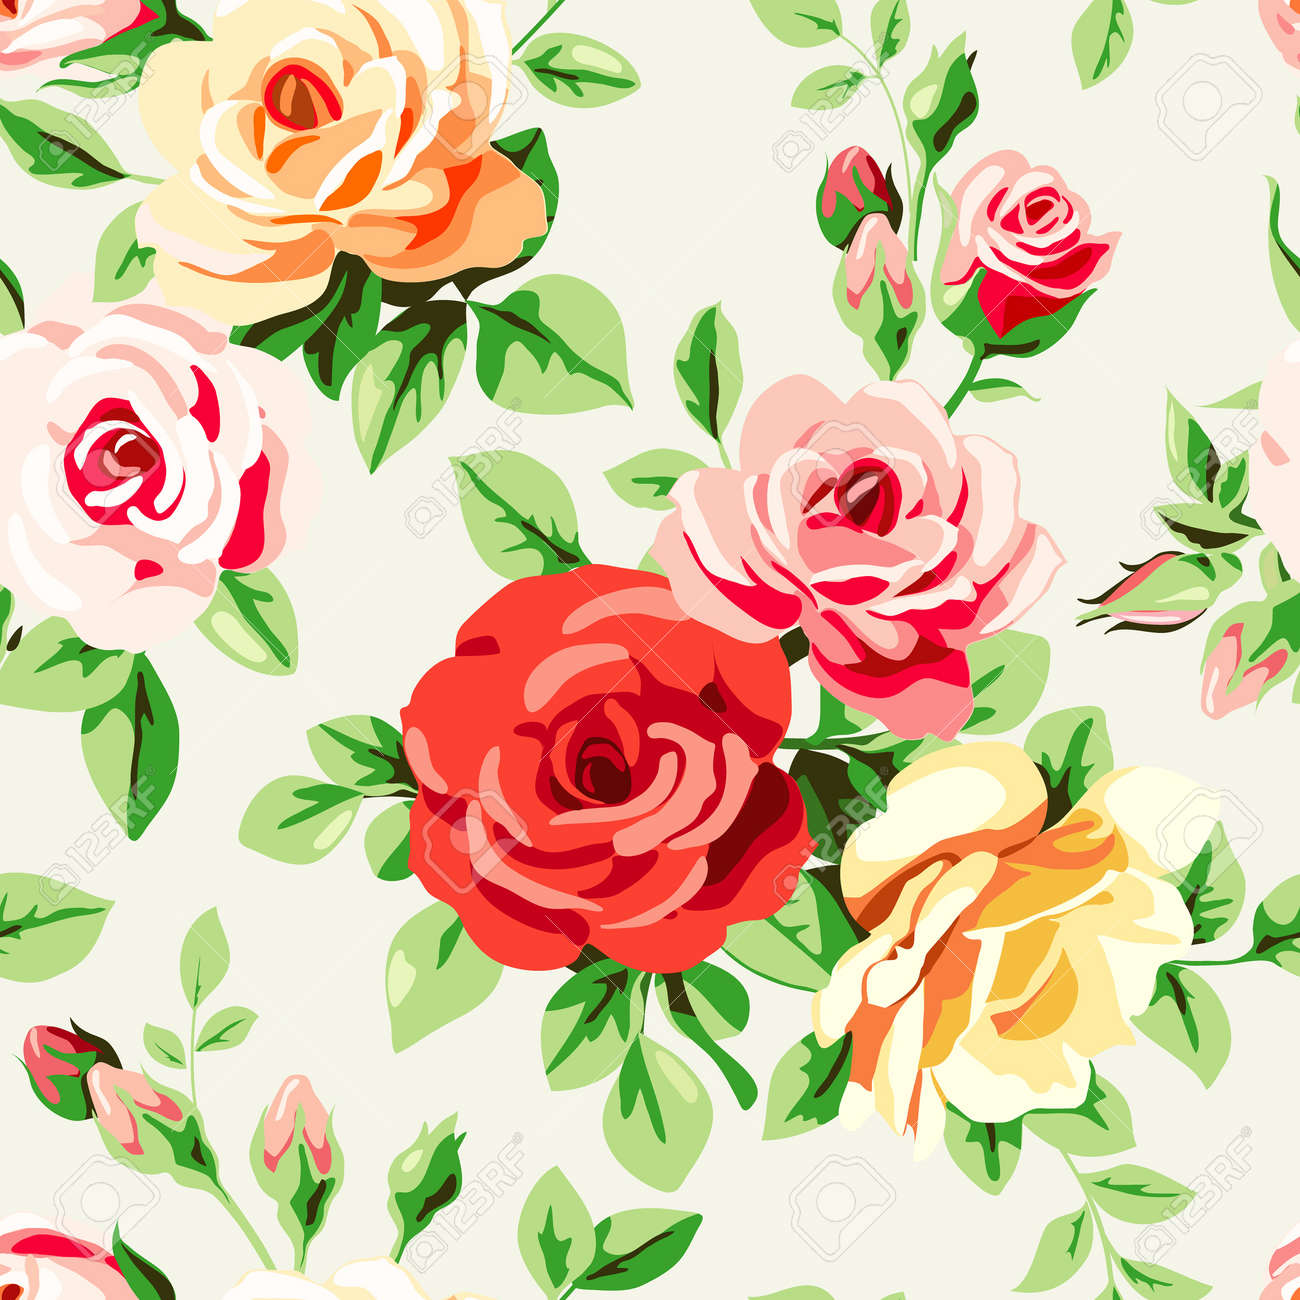 Wallpaper With Roses Royalty Free Cliparts Vectors And Stock